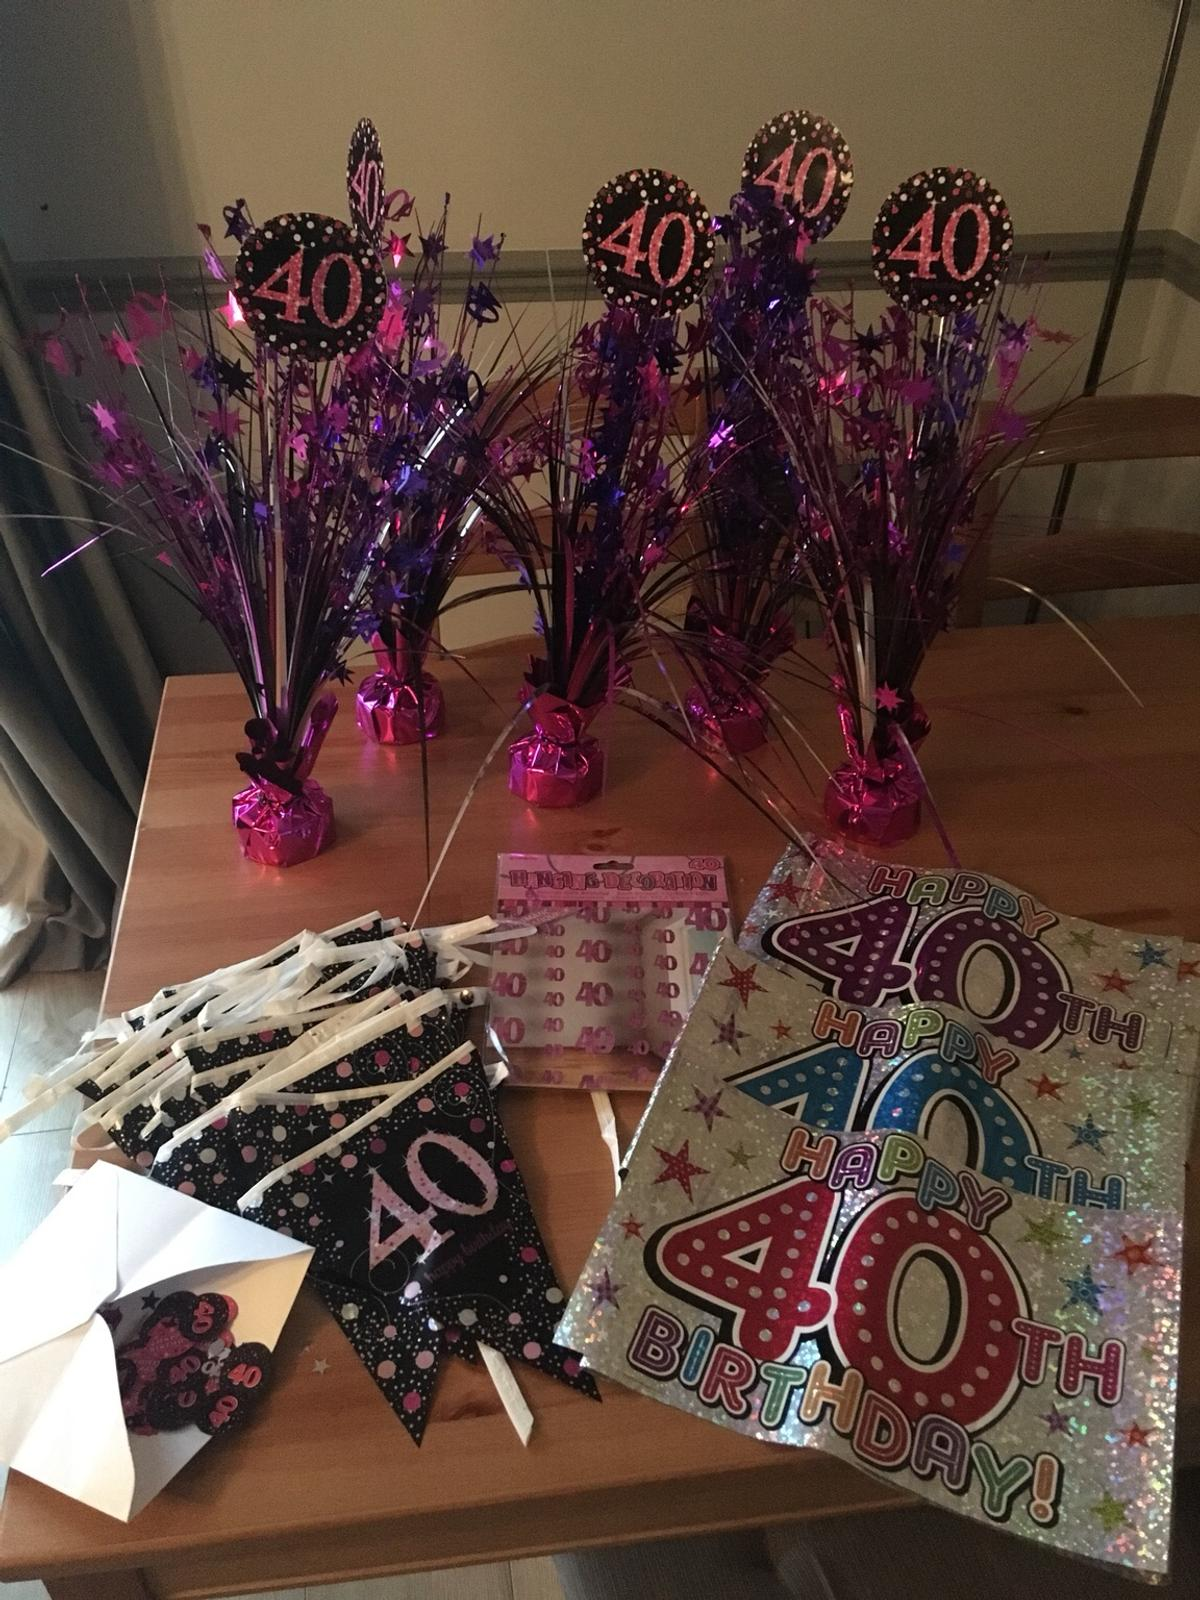 40th Birthday Decorations In BD2 Bradford Fur 1000 Kaufen